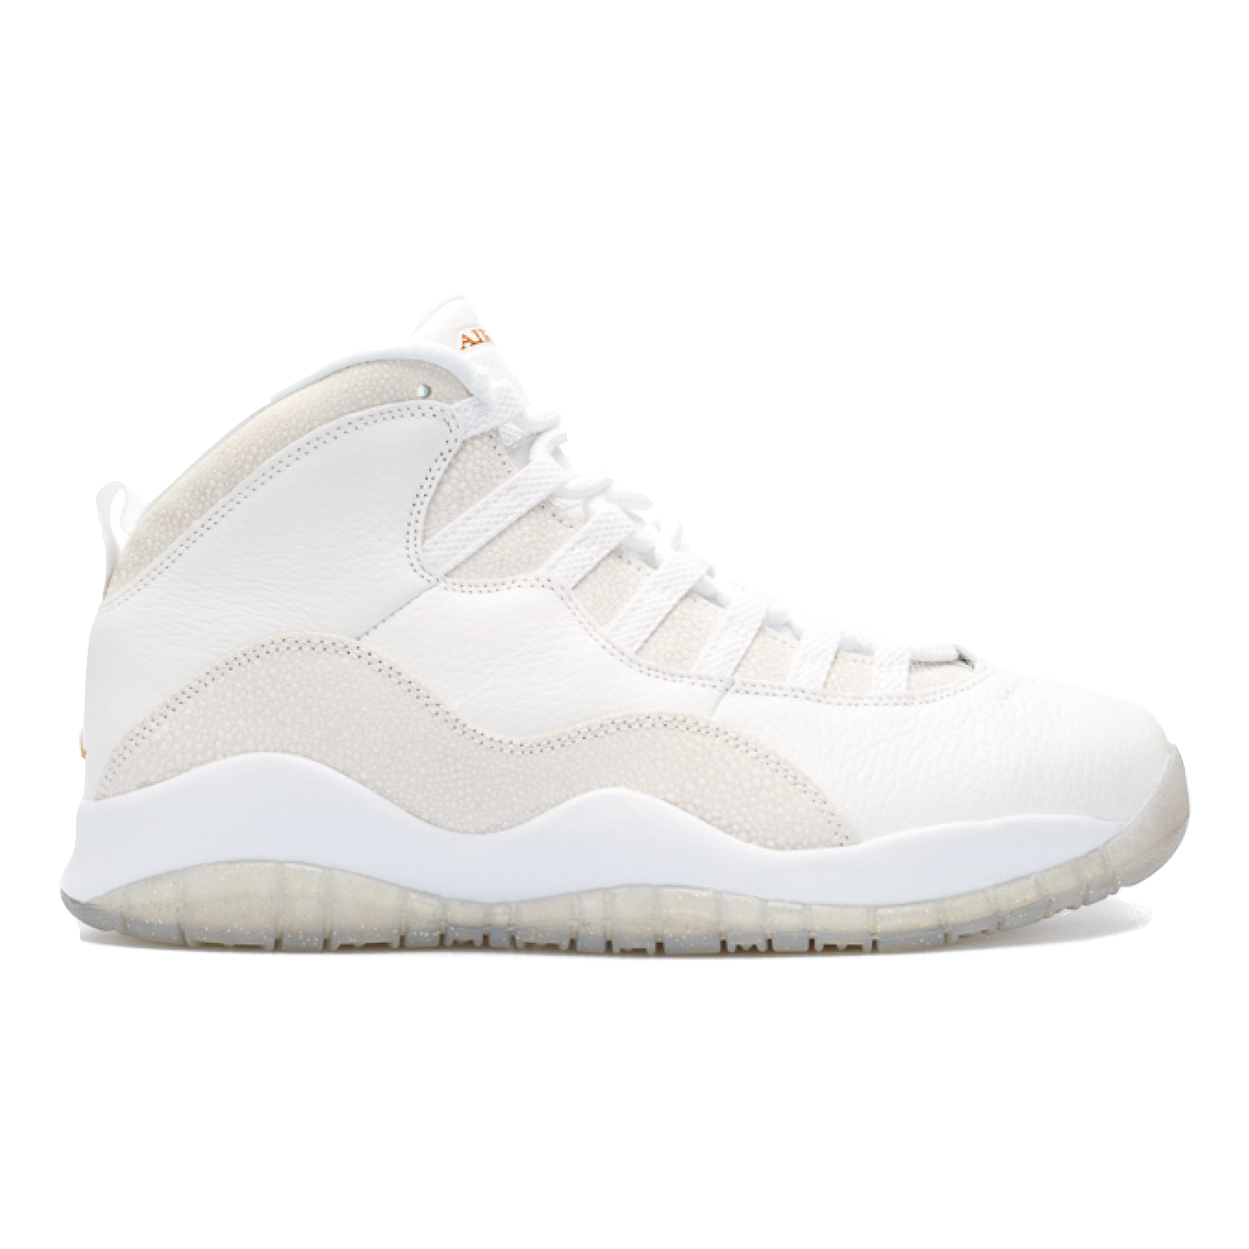 Air Jordan 10 Retro OVO - White